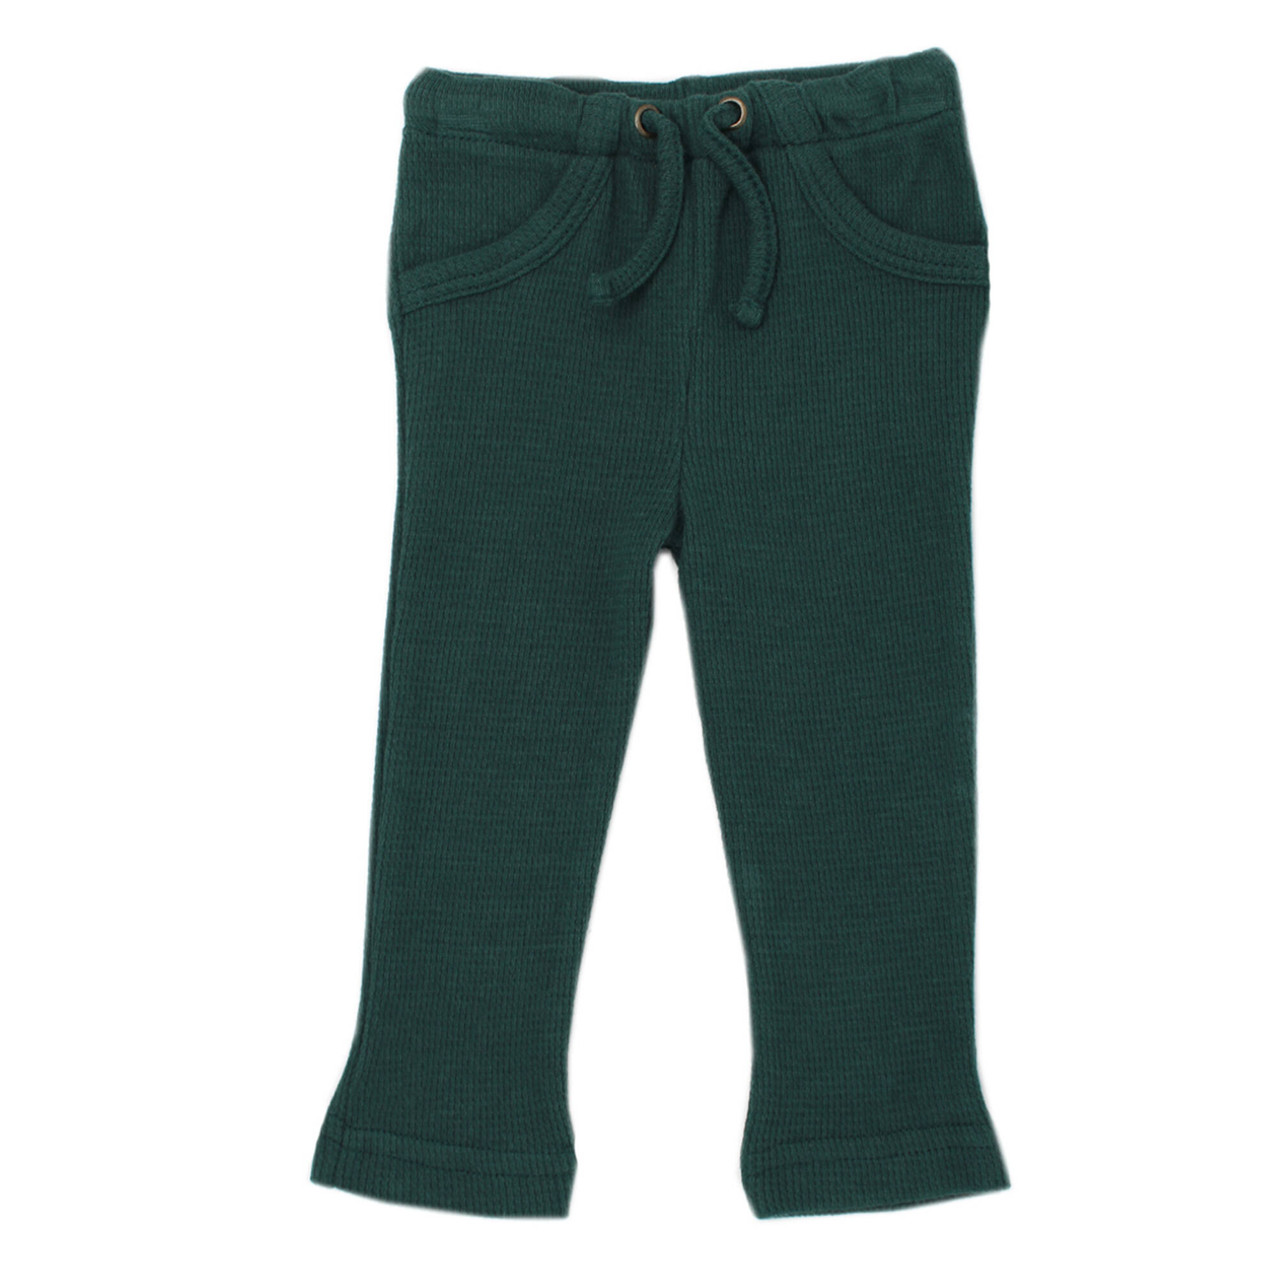 Organic Thermal Drawstring Fitted Pants in Pine, Flat